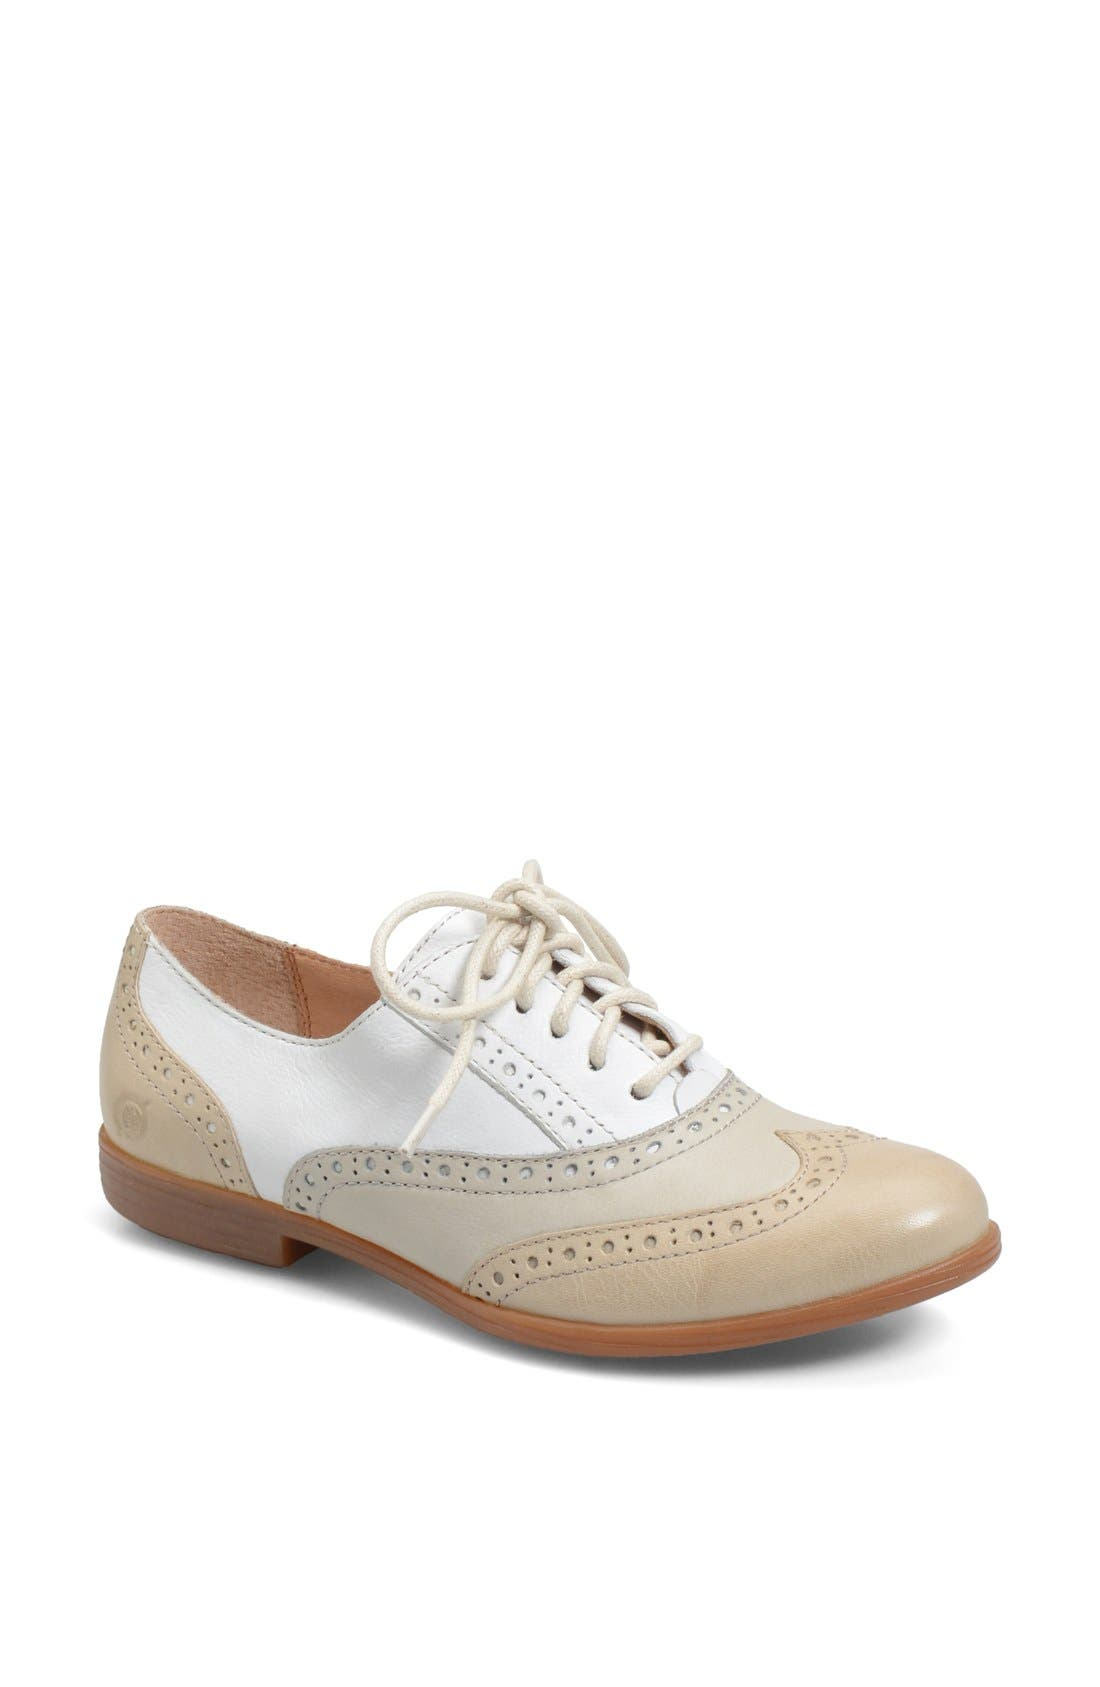 Alternate Image 1 Selected - Børn 'Ashleigh' Flat (Online Exclusive)